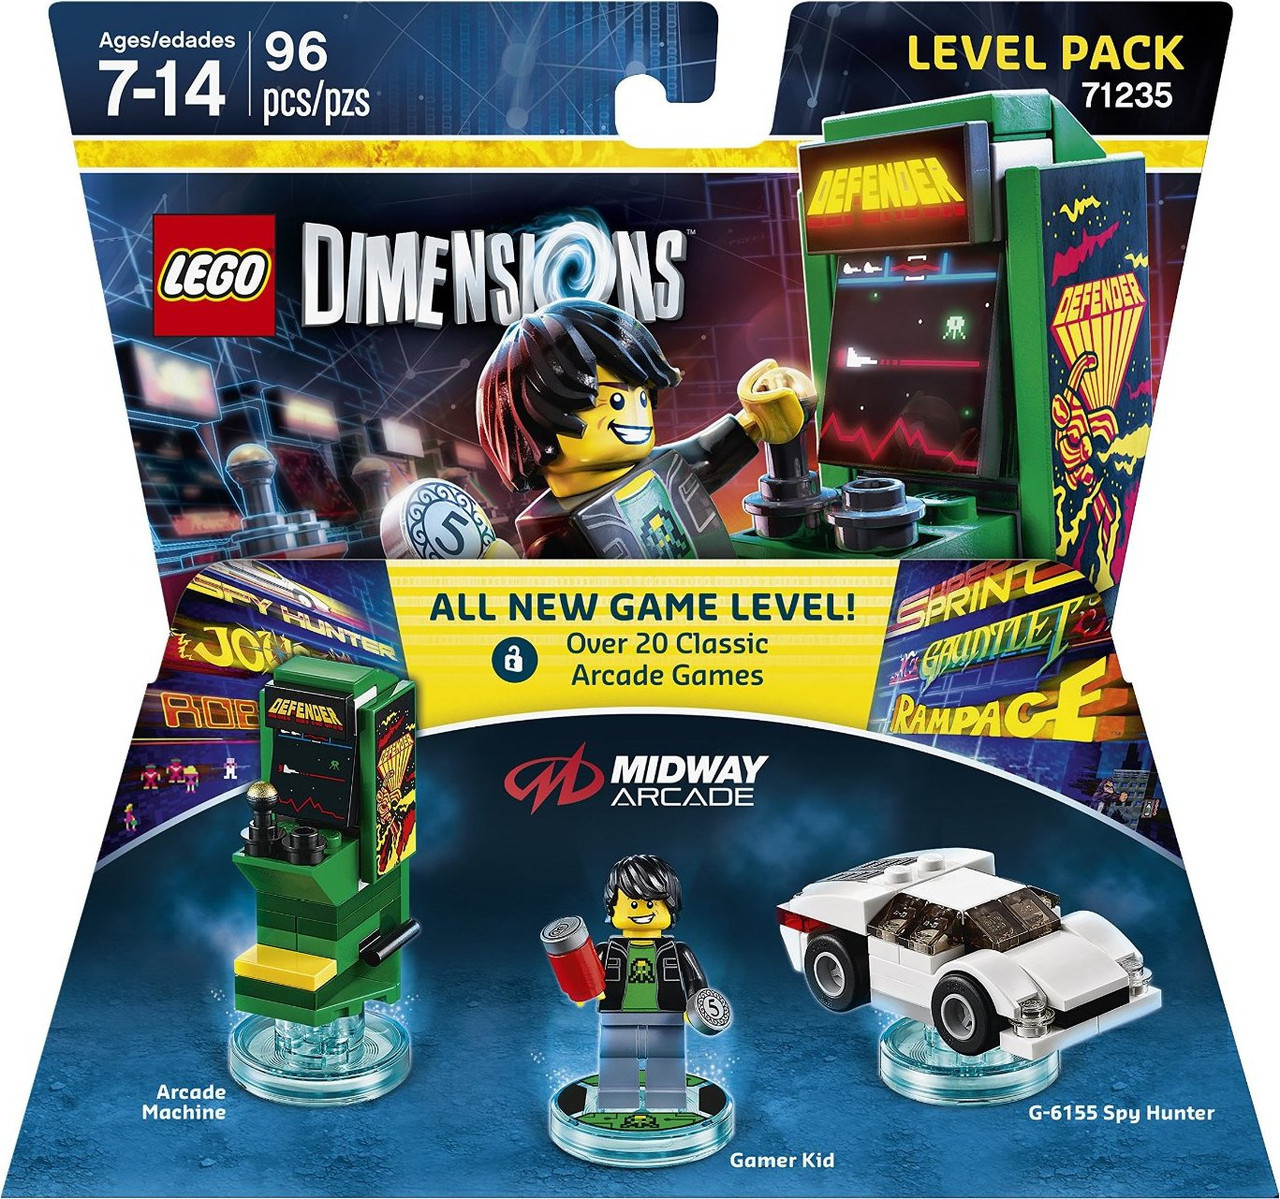 71235 Lego Dimensions Midway Arcade (Level Pack)